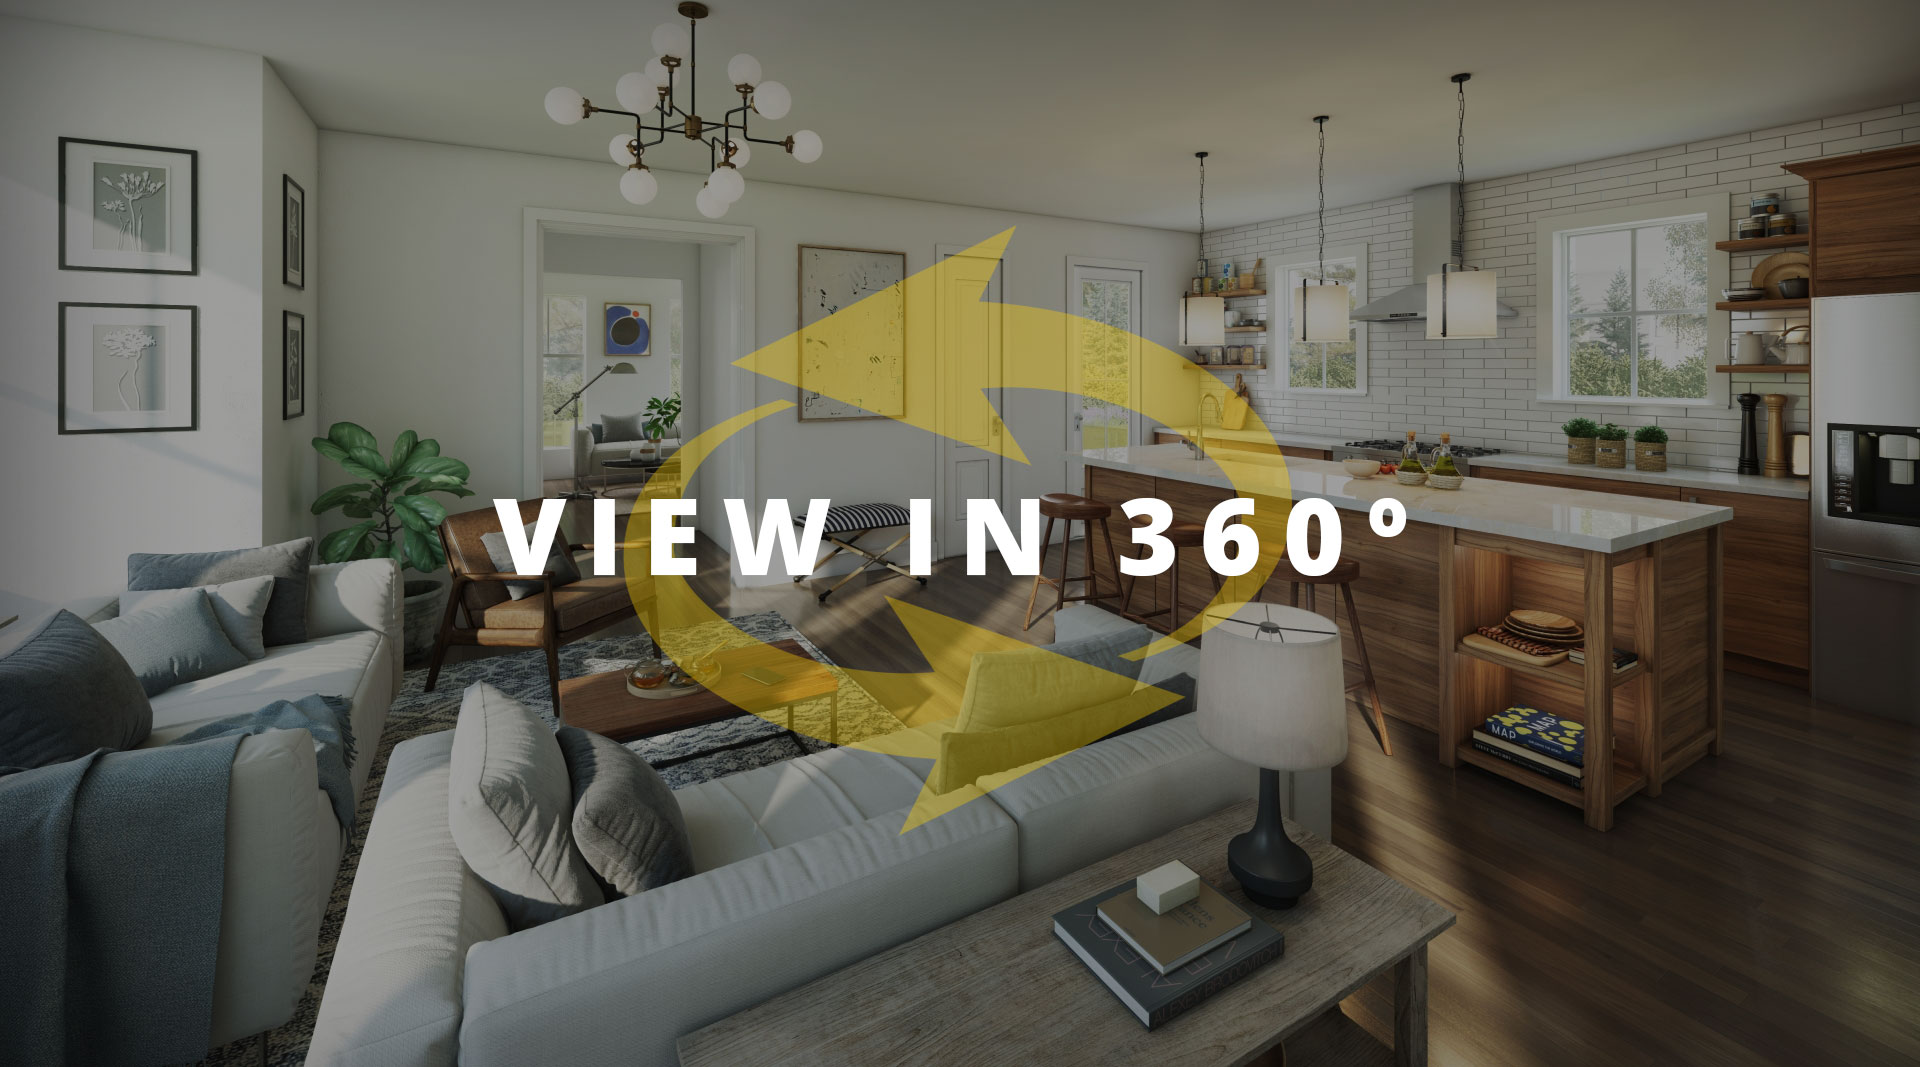 View in 360º - requires Flash or HTML5 Browser with CSS3D or WebGL support